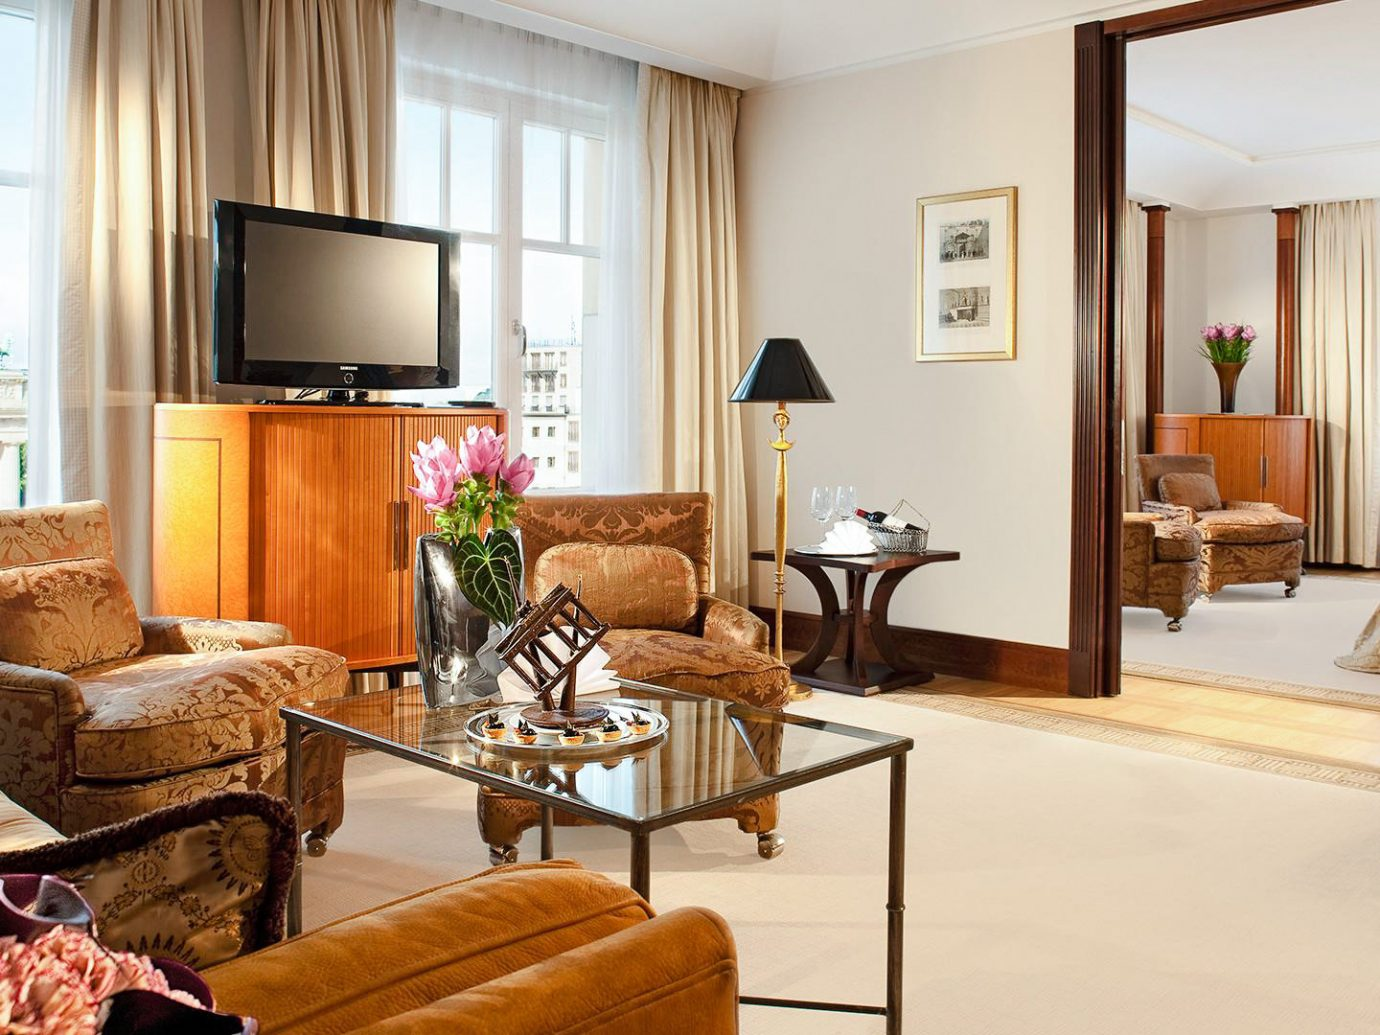 Berlin Boutique Hotels Germany Hotels Luxury Travel indoor floor Living room window wall living room chair Suite interior design furniture real estate home interior designer decorated containing